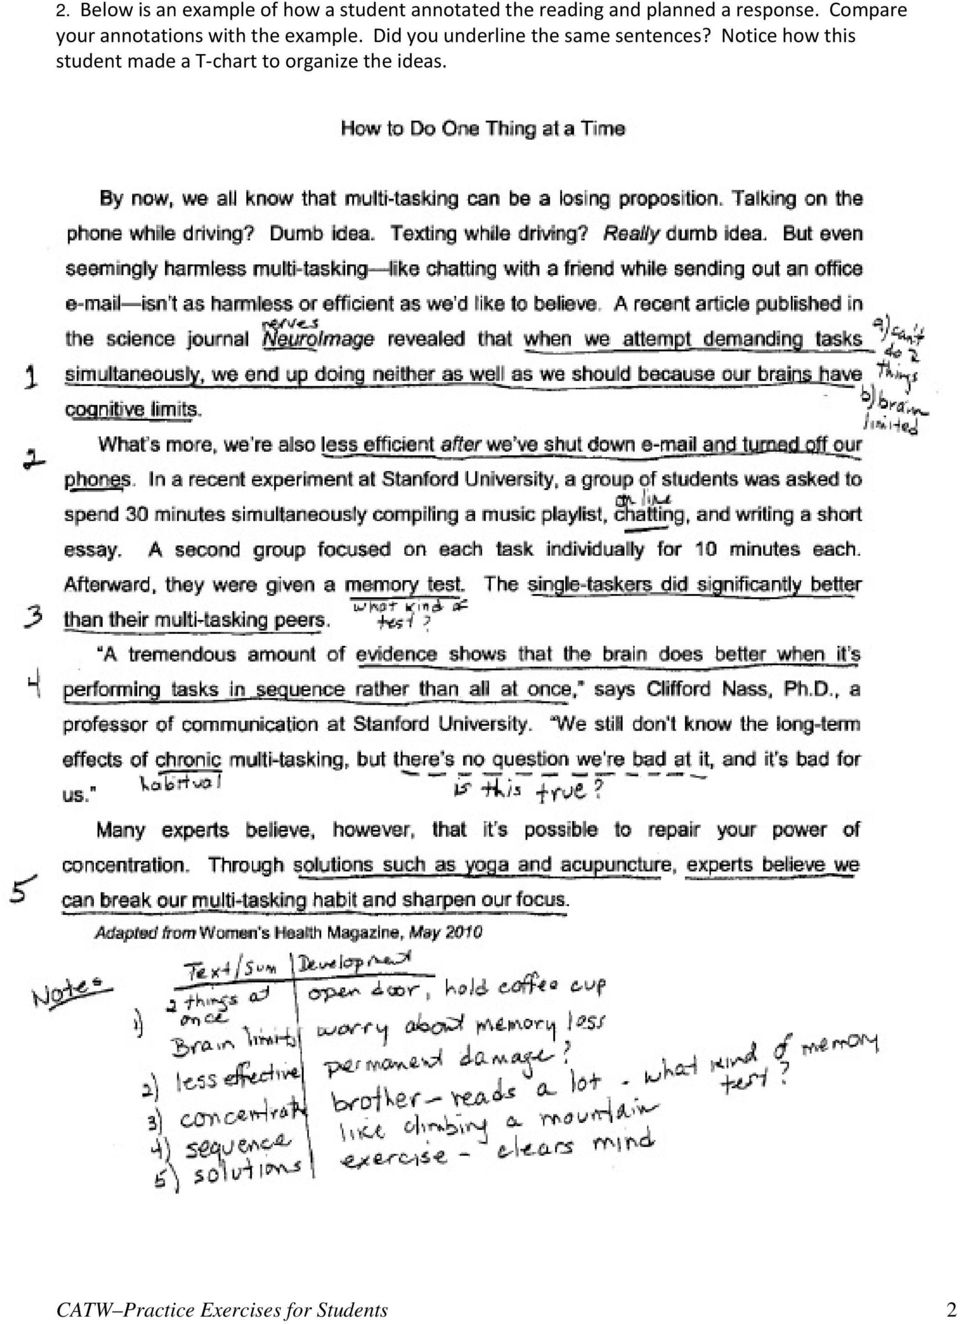 009 Medical Research Papers Topics Paper Page 3 Awful Best Ethics For High School Students Full